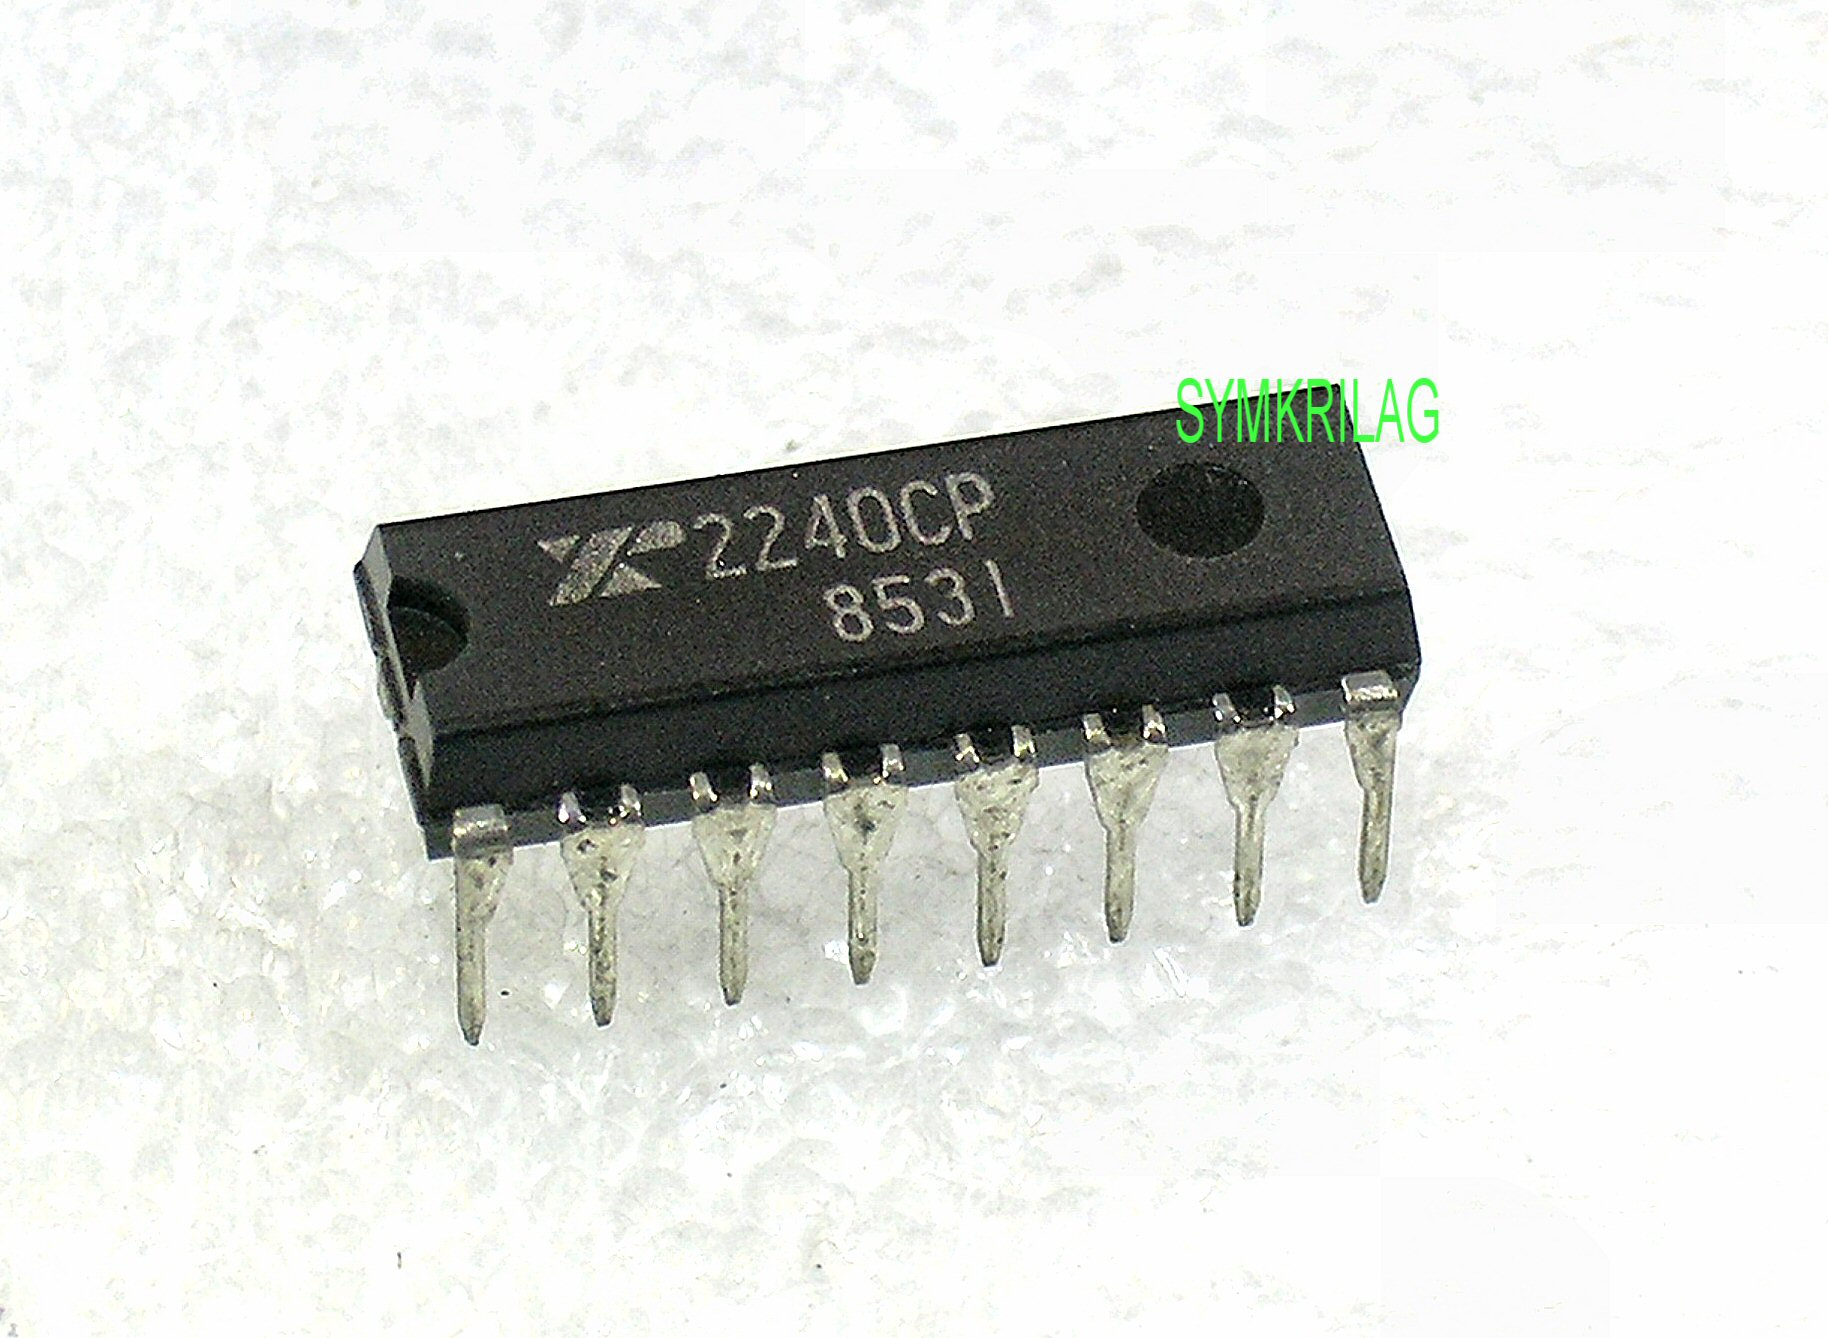 XR2240CP PROGRAMMABLE TIMER/COUNTER IC DIP16